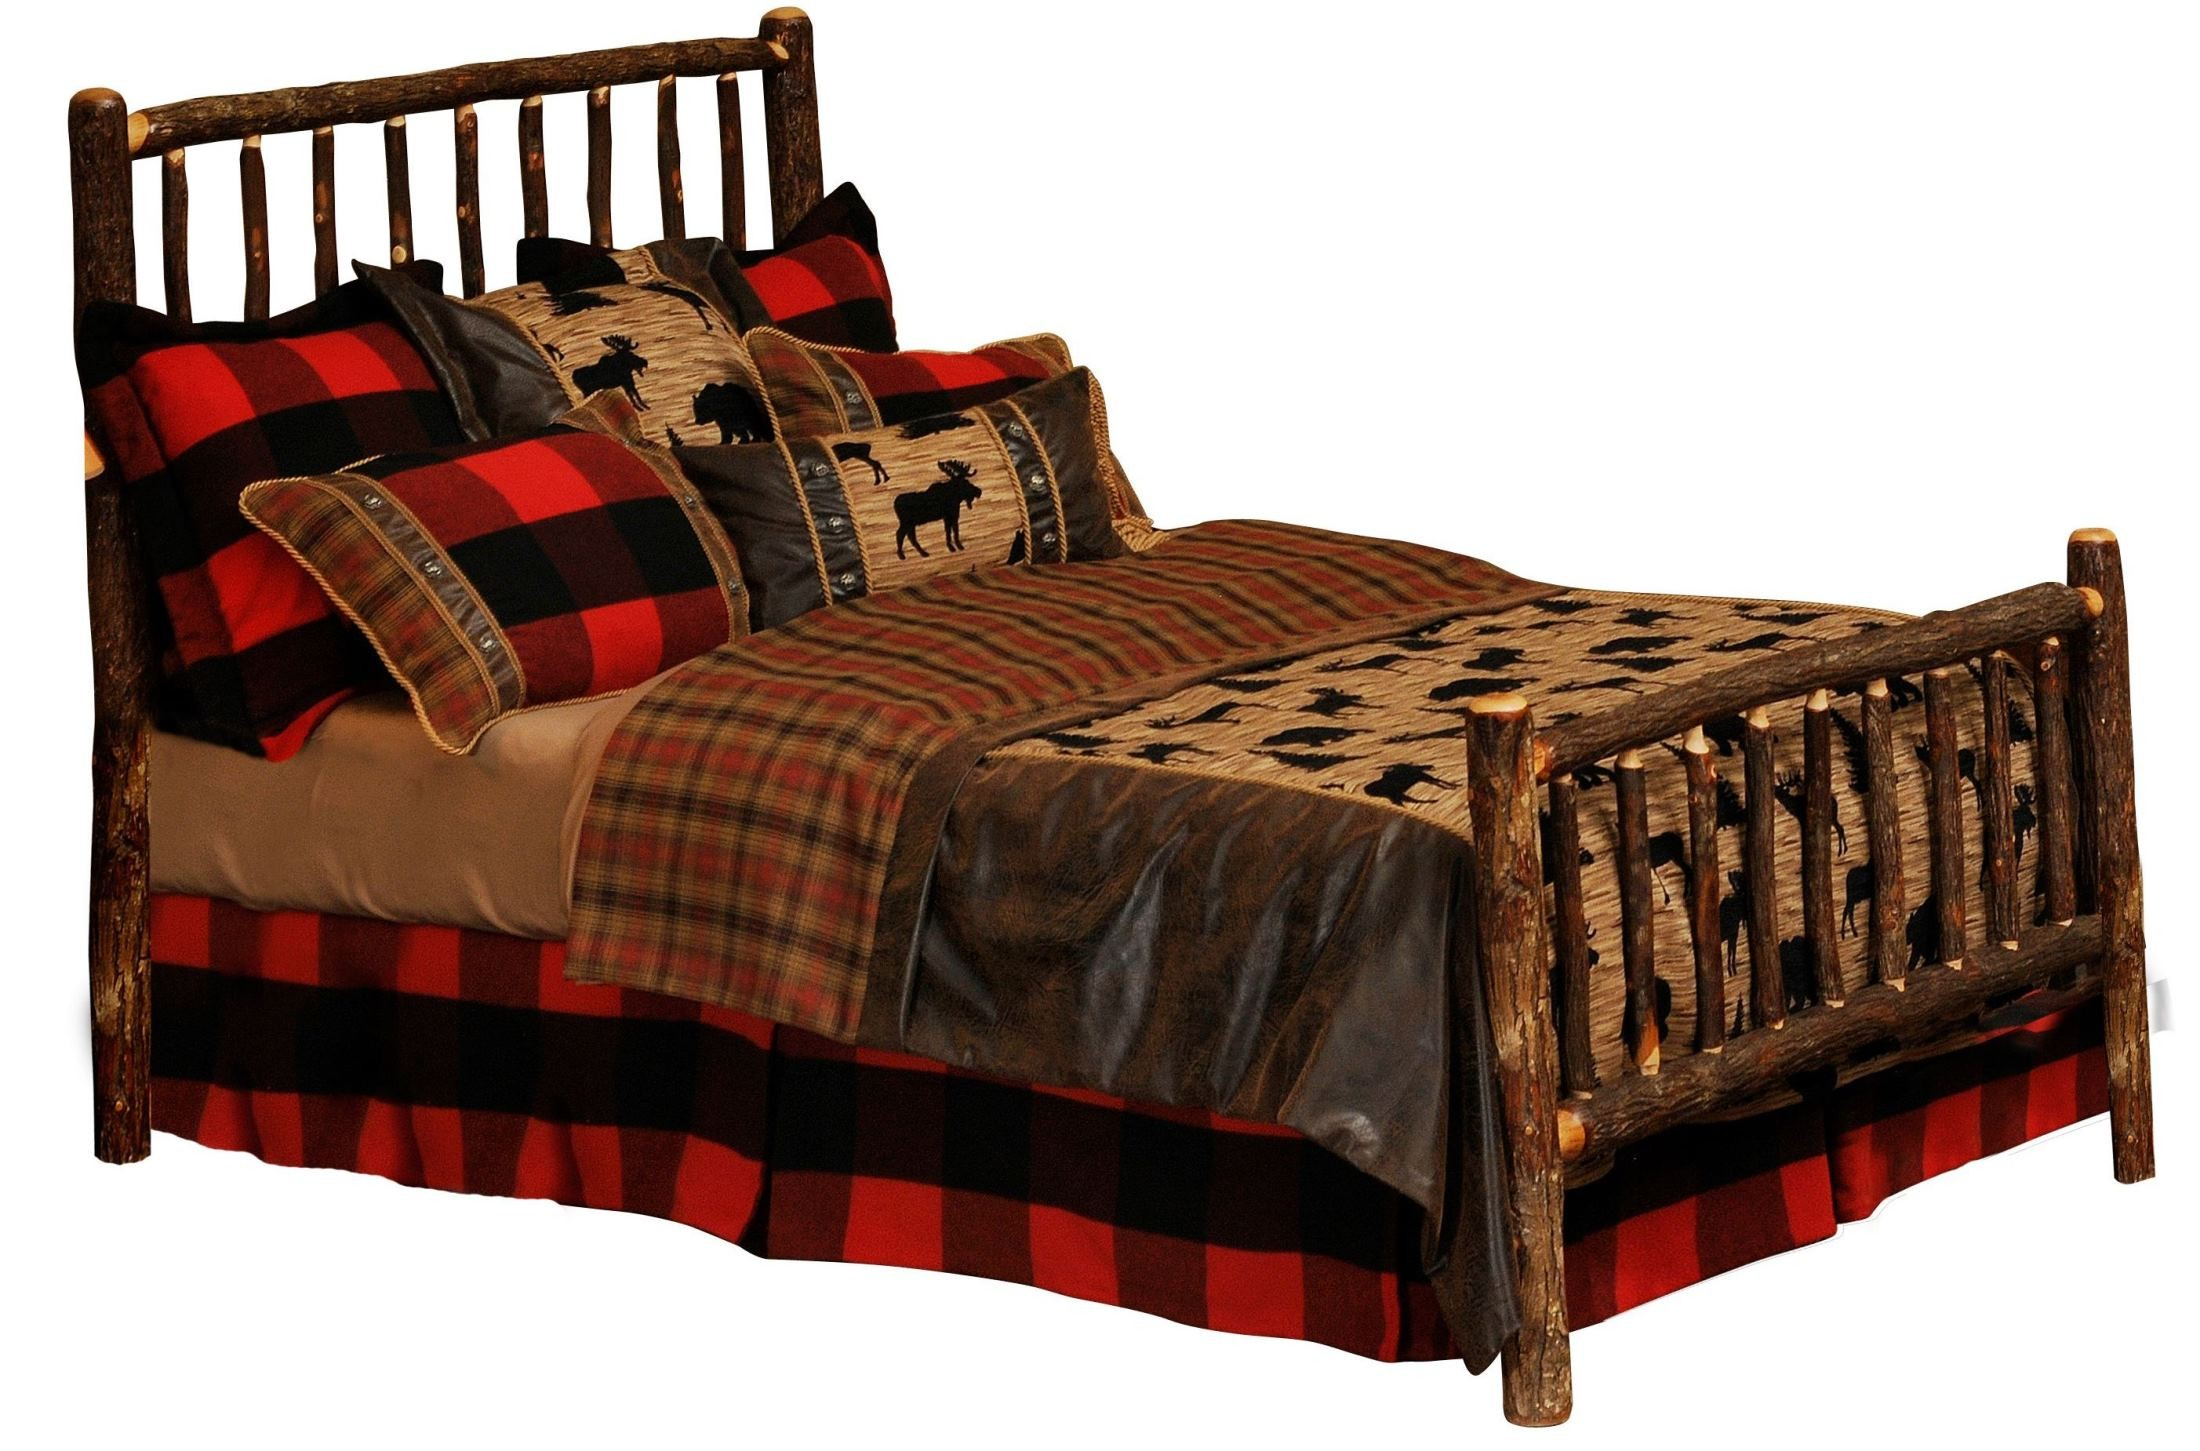 hickory chair king size bed blaisdell counter height armchair cal log with rails from fireside